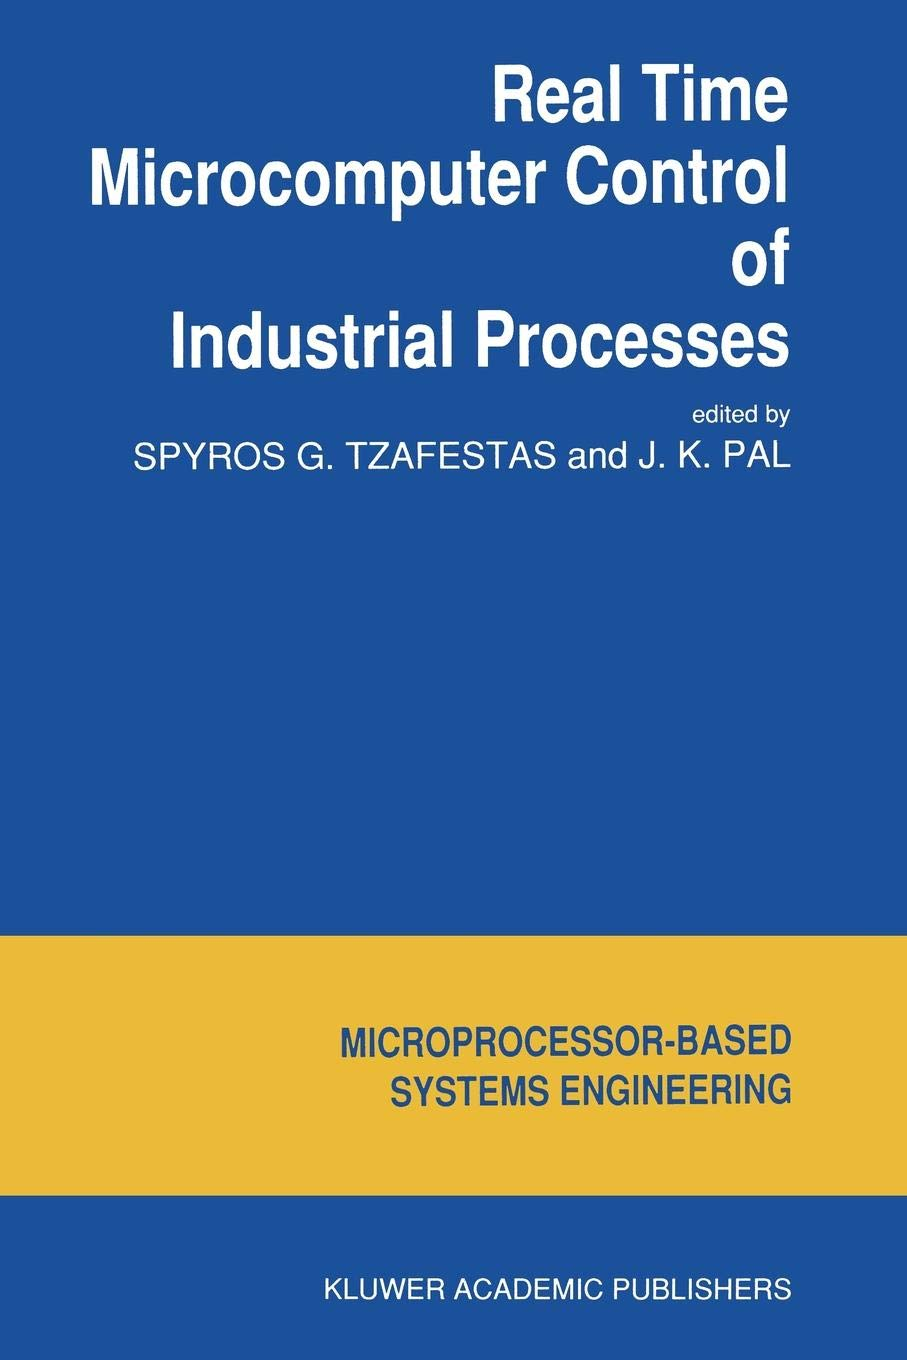 Real-time microcomputer control of industrial processes